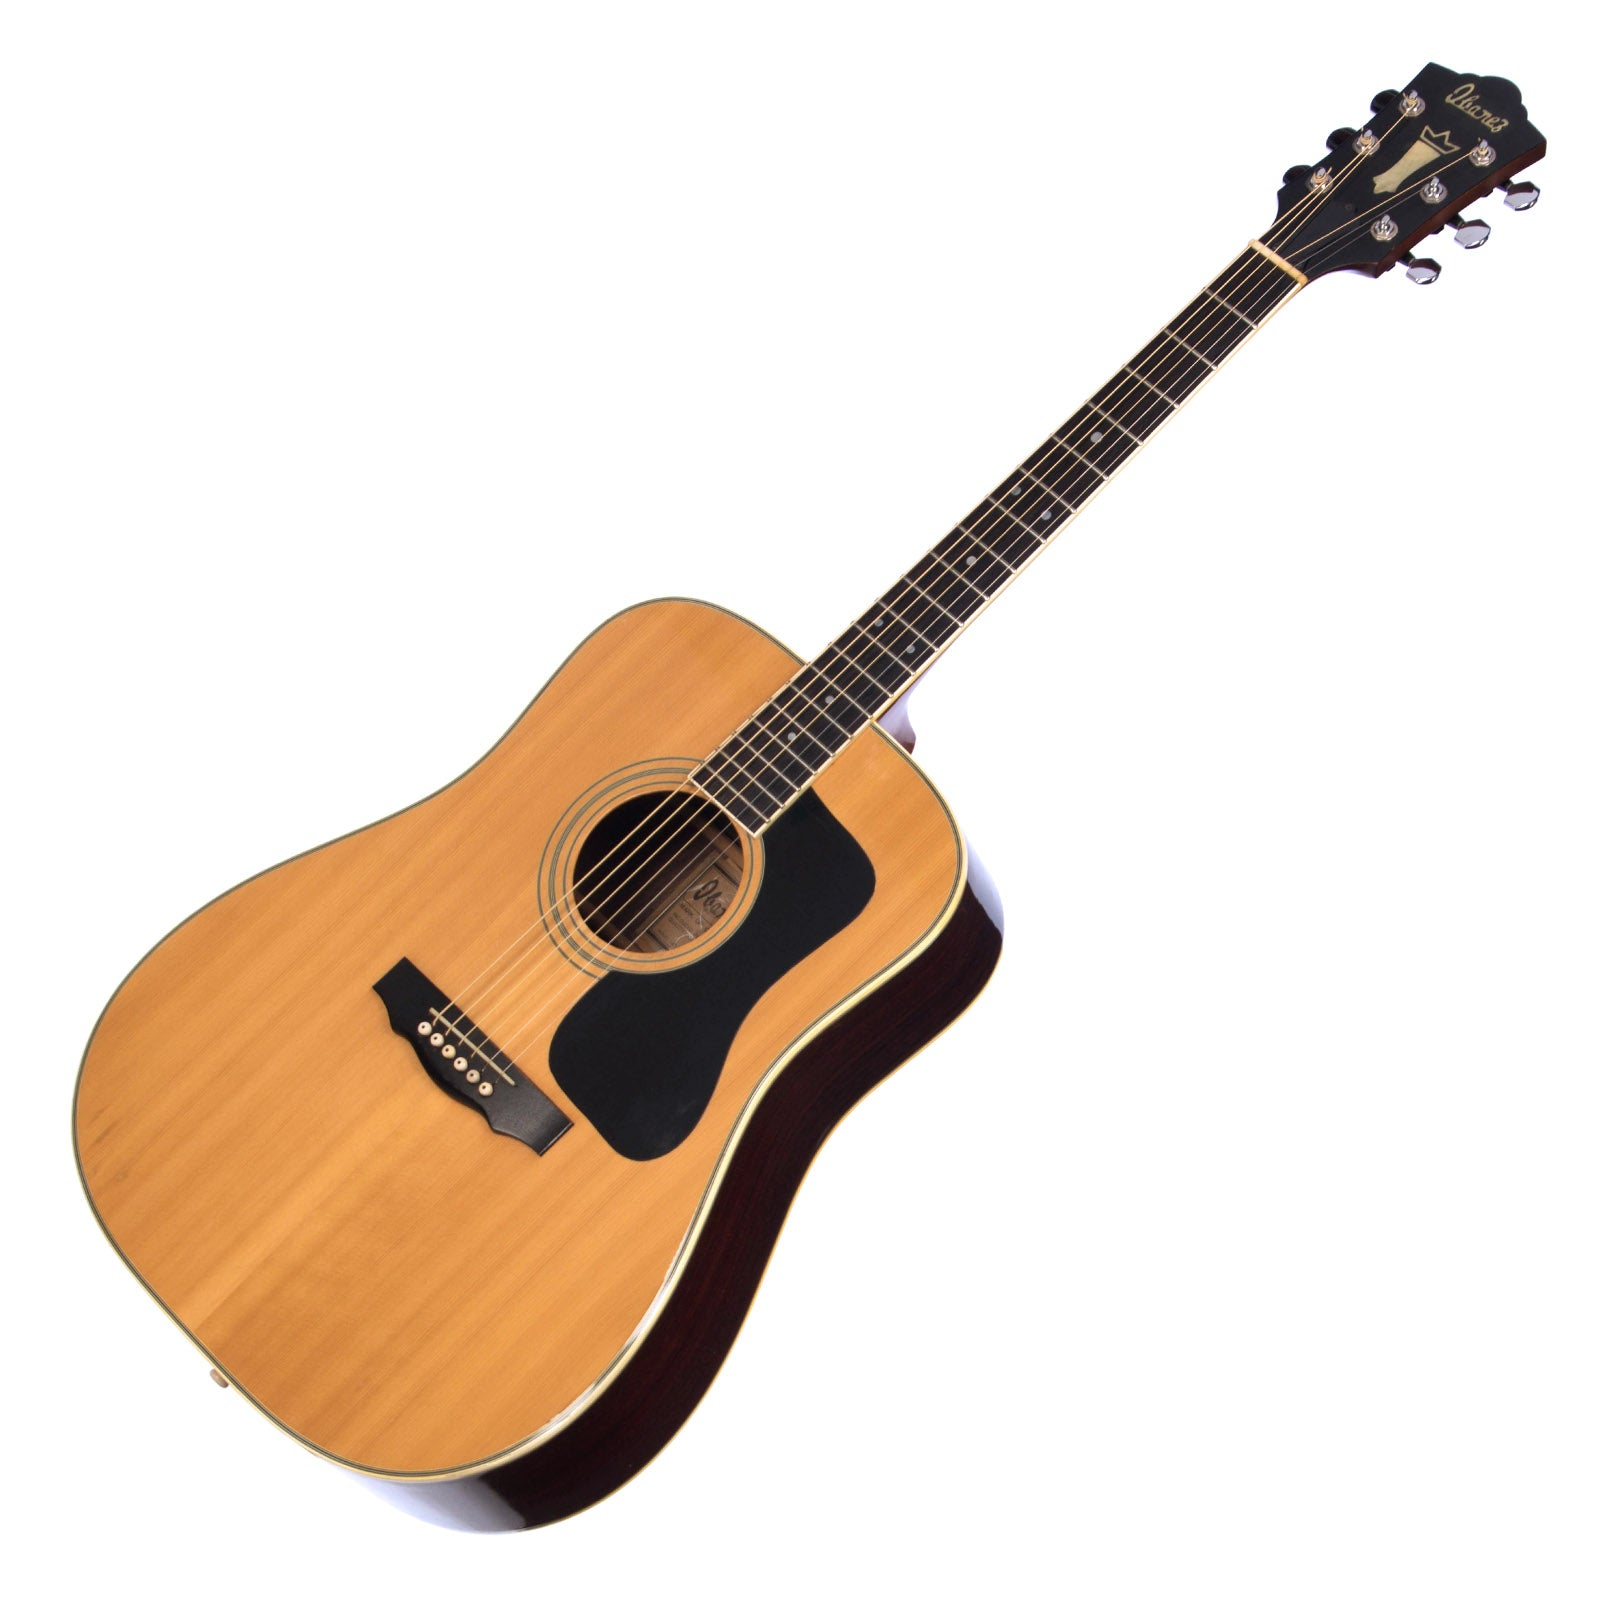 a61e383021f USED Ibanez Model 2846 - Lawsuit Era Guild Copy Made in Japan - Vintage  Dreadnought Acoustic